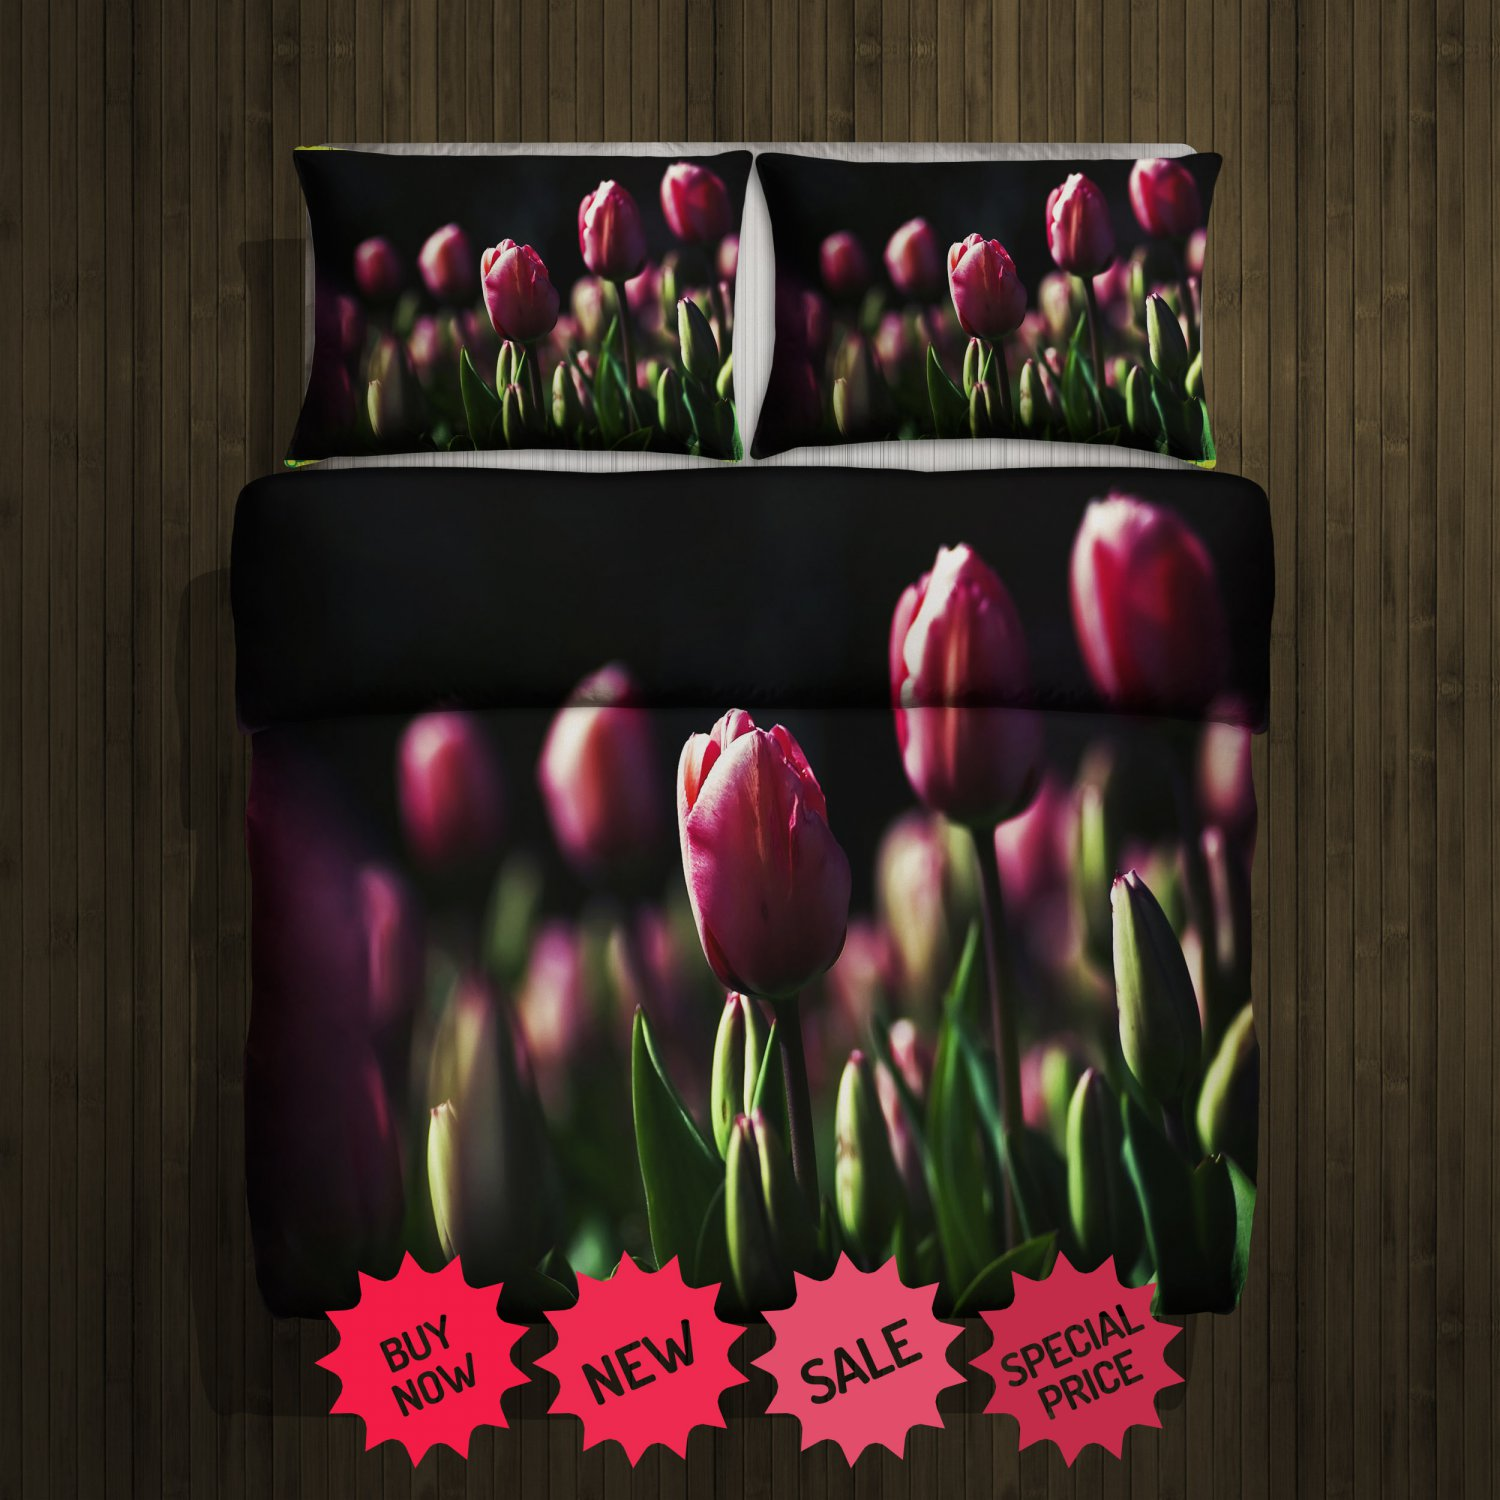 Tulip Blanket Large & 2 Pillow Cases #98646169 ,98647297(2)